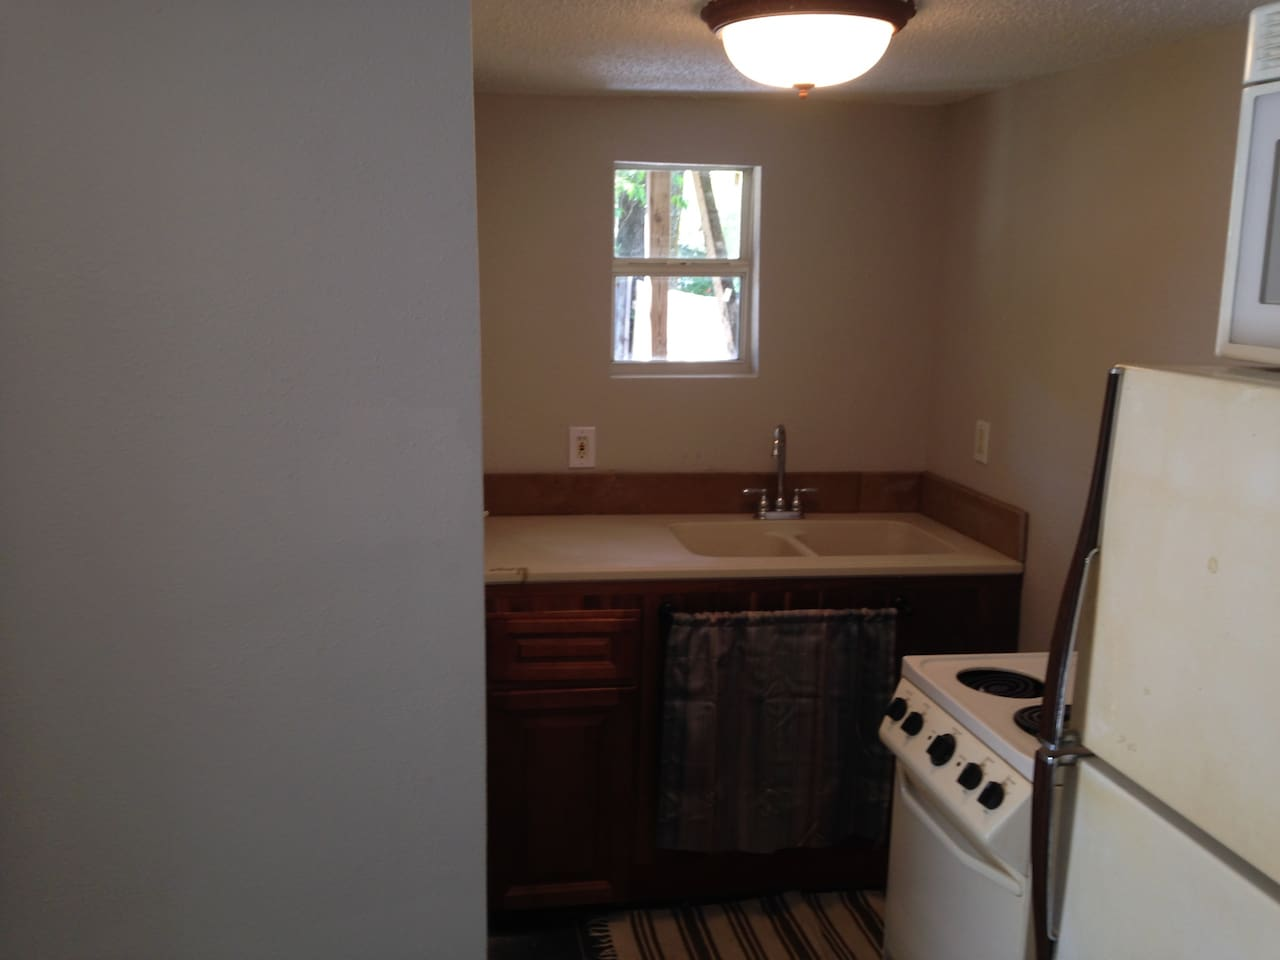 Kitchen, with microwave, range, coffee maker, dishes...